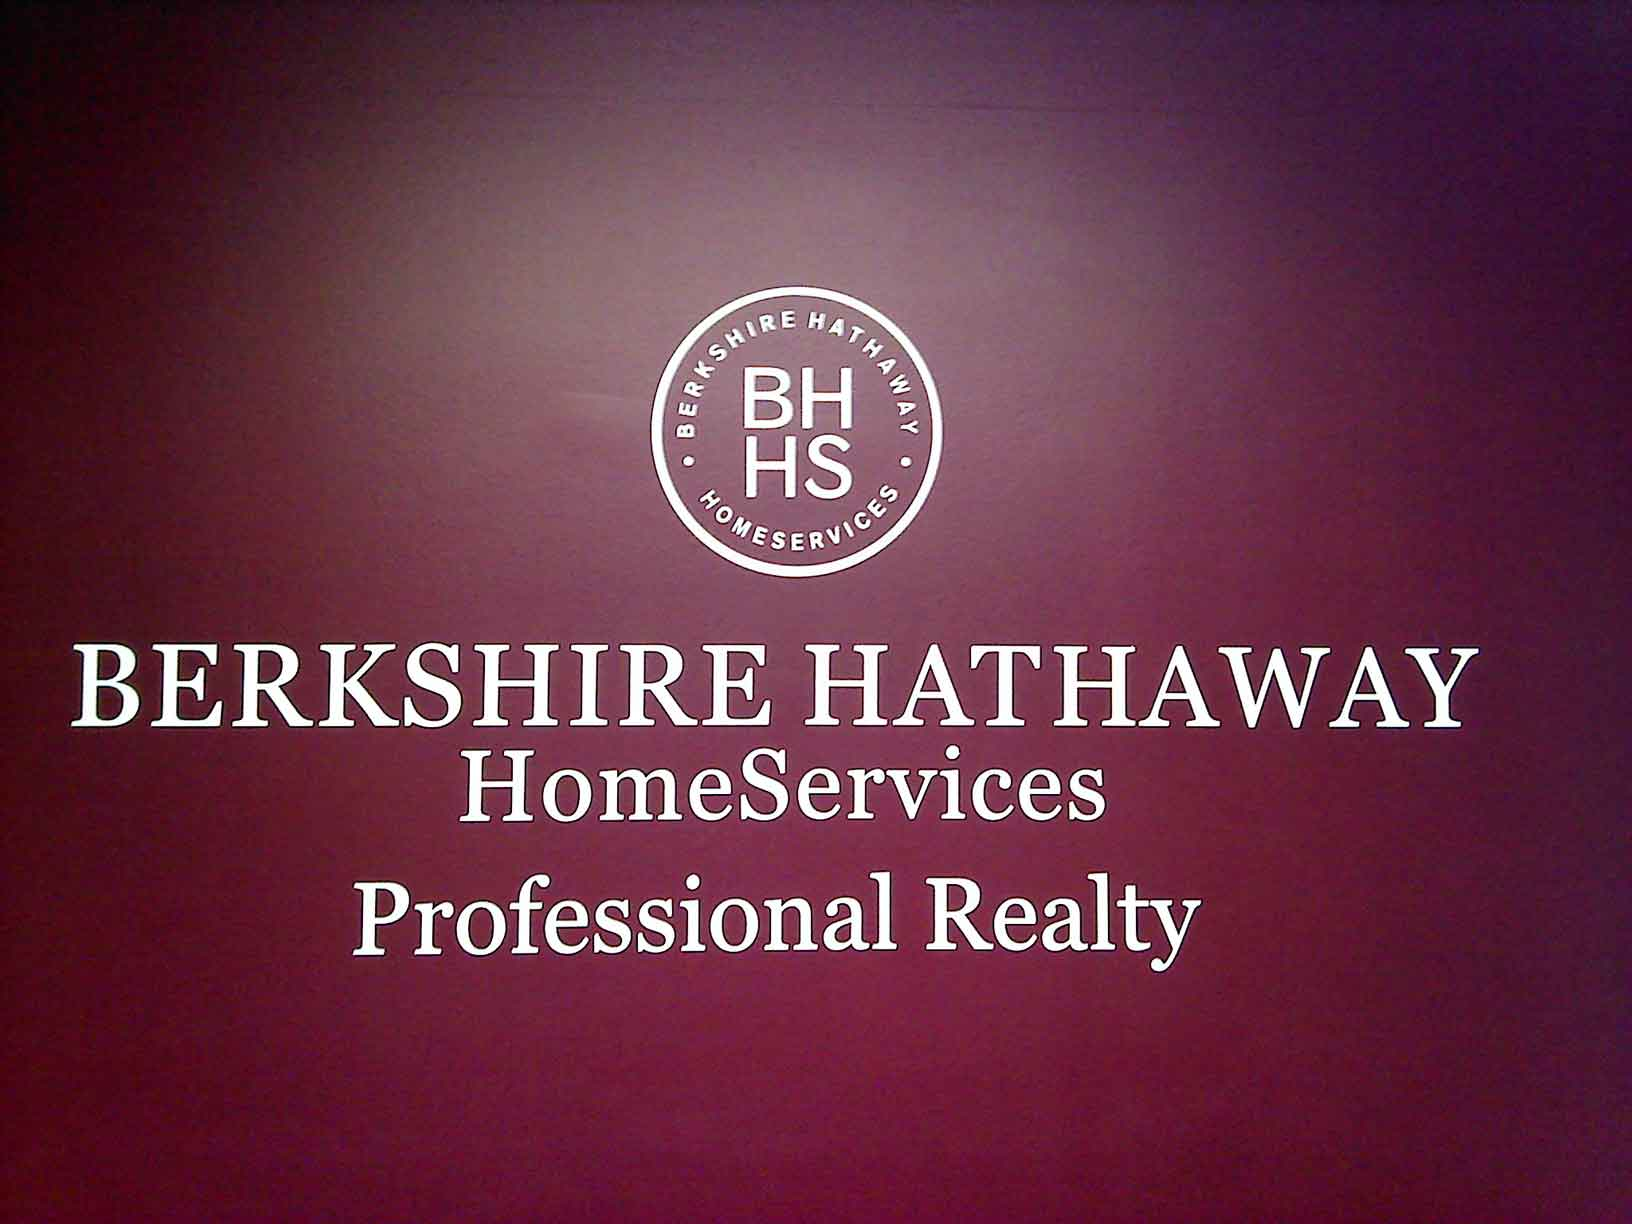 berkshire hathaway essay Berkshire hathaway overview before warren edward buffett, berkshire hathaway was a textile company buffet acquired stocks and before long he was the largest shareholder (1963) buffet acquired stocks and before long he was the largest shareholder (1963.